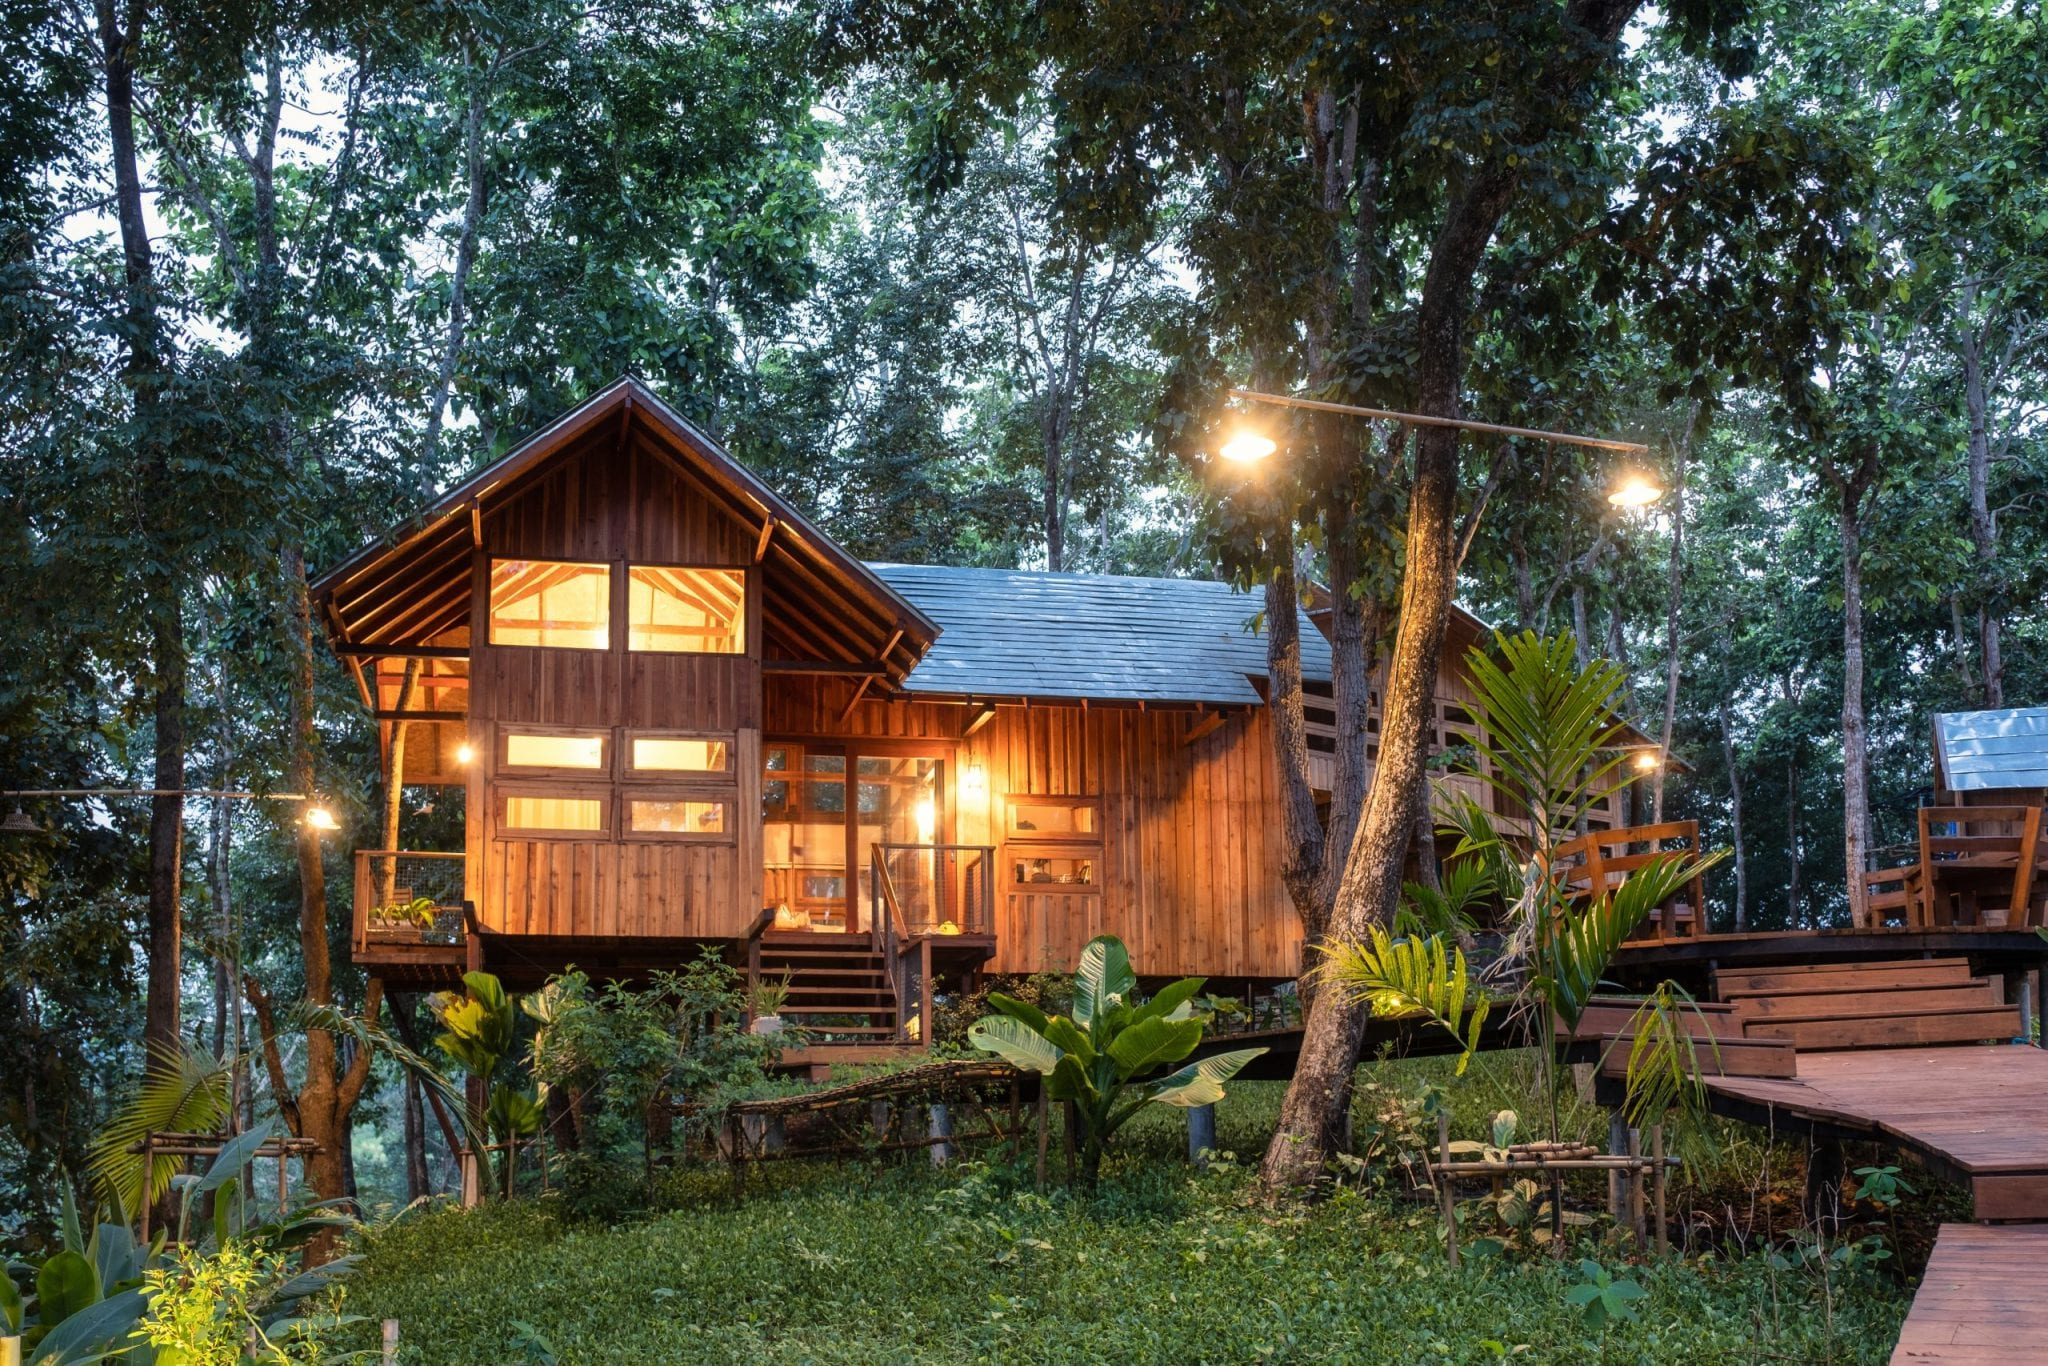 How to manage your cottage property while spending less?